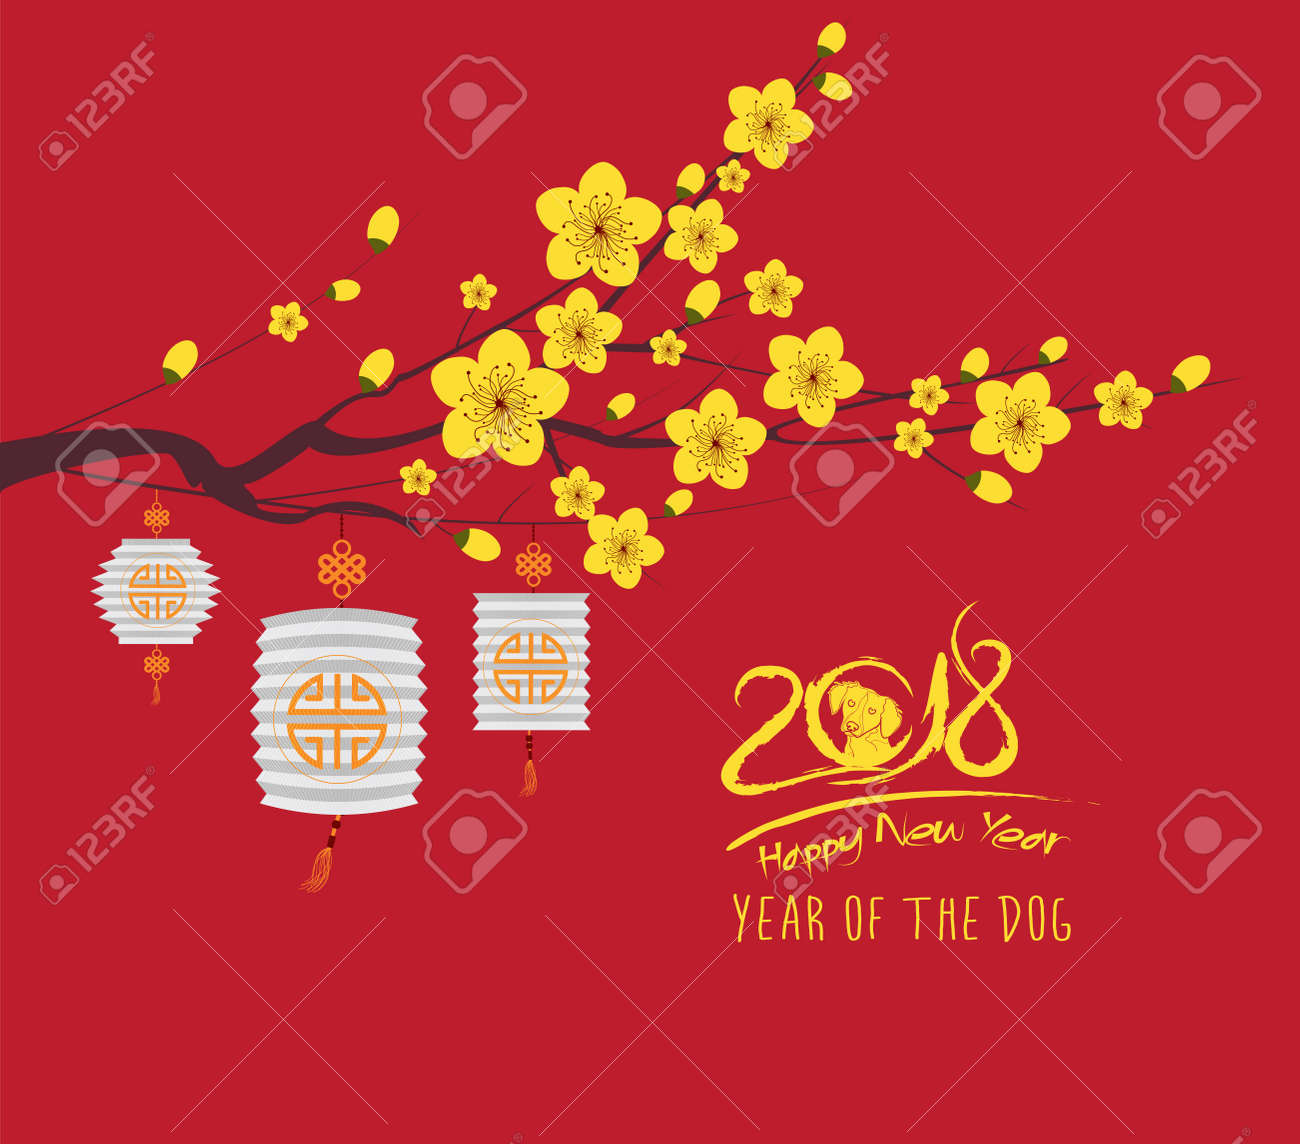 Happy New Year 2018 Greeting Card And Chinese New Year Of The